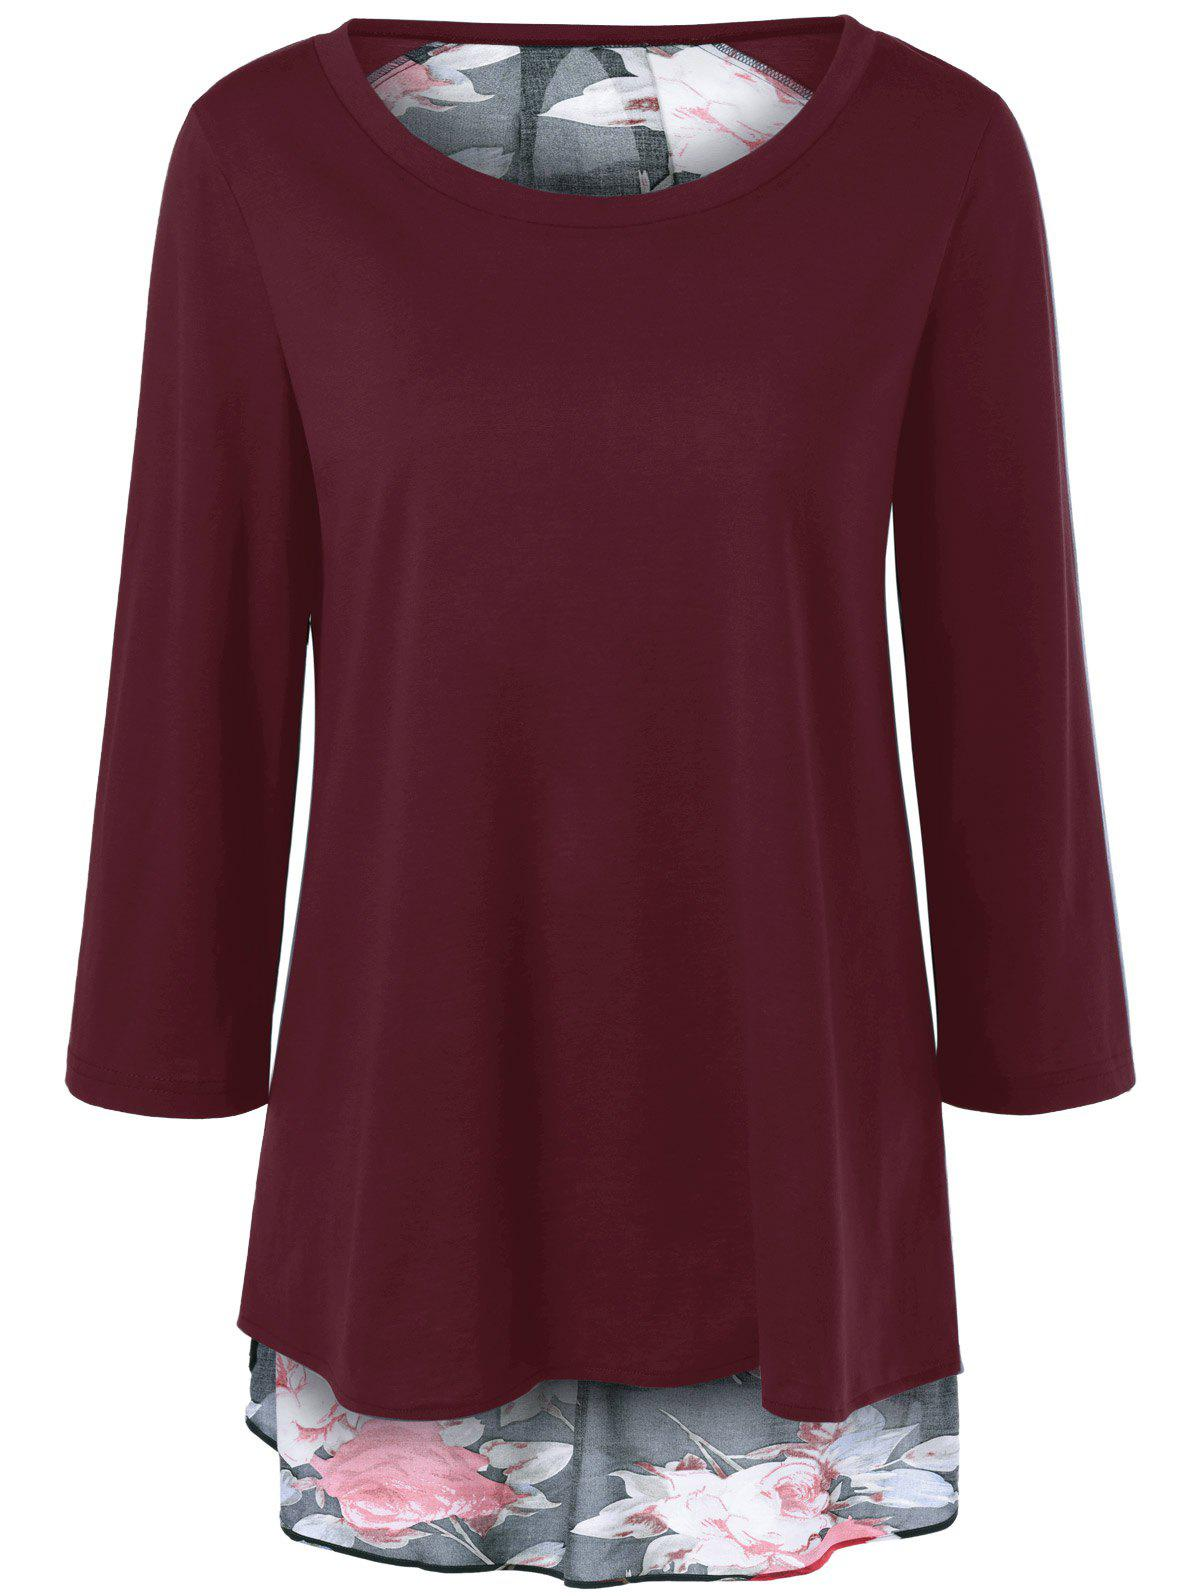 Floral Print Layered Blouse - WINE RED XL